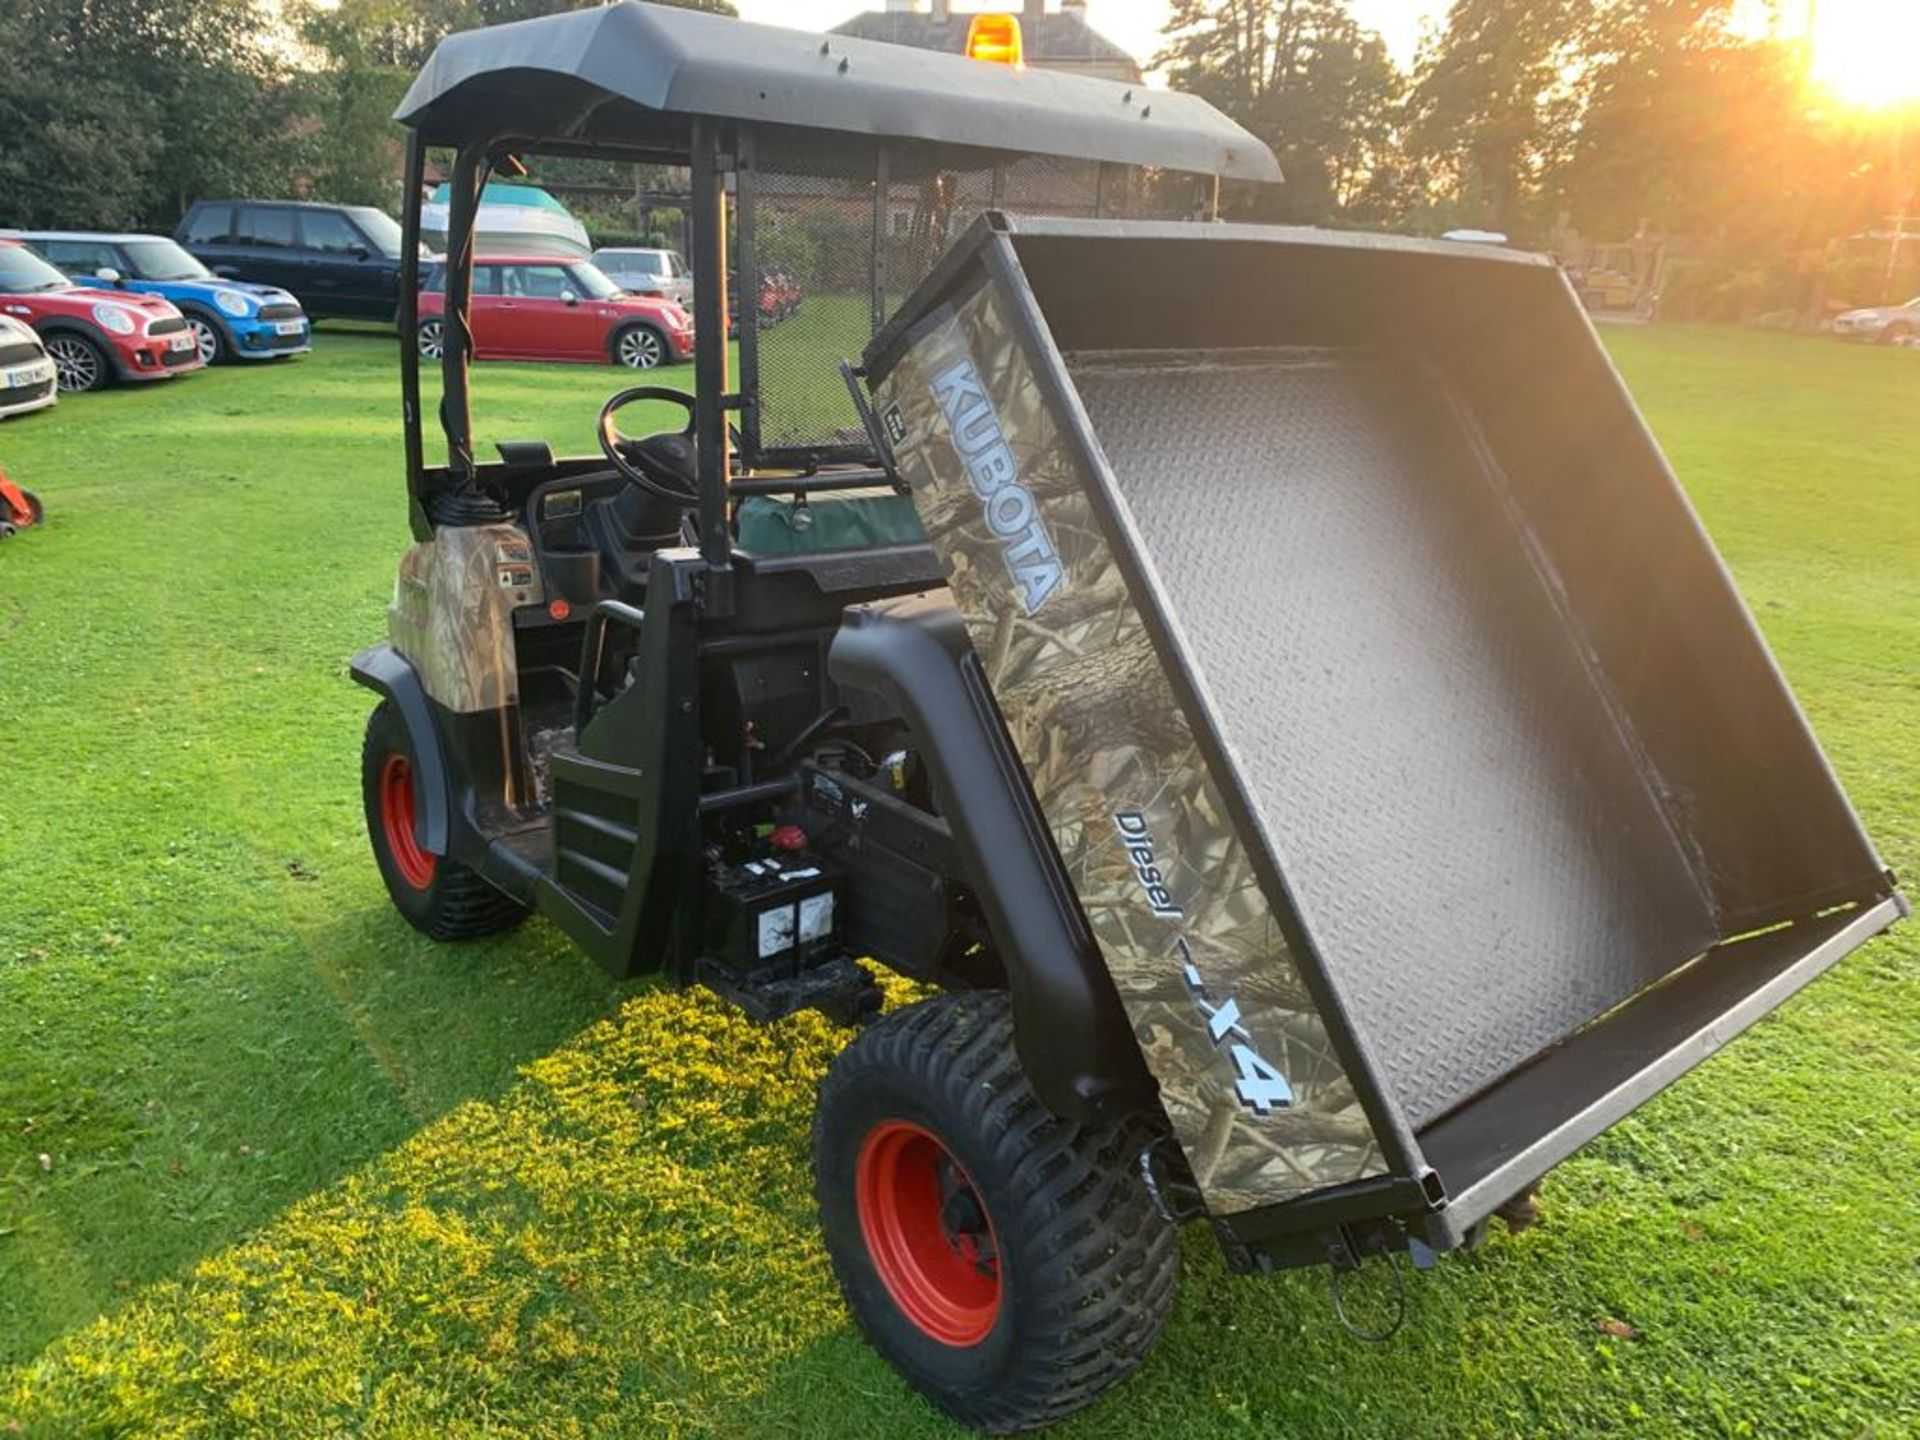 KUBOTA 4X4 DIESEL HYDRAULIC TIPPER BUGGY, RUNS, WORKS AND TIPS *PLUS VAT* - Image 7 of 22